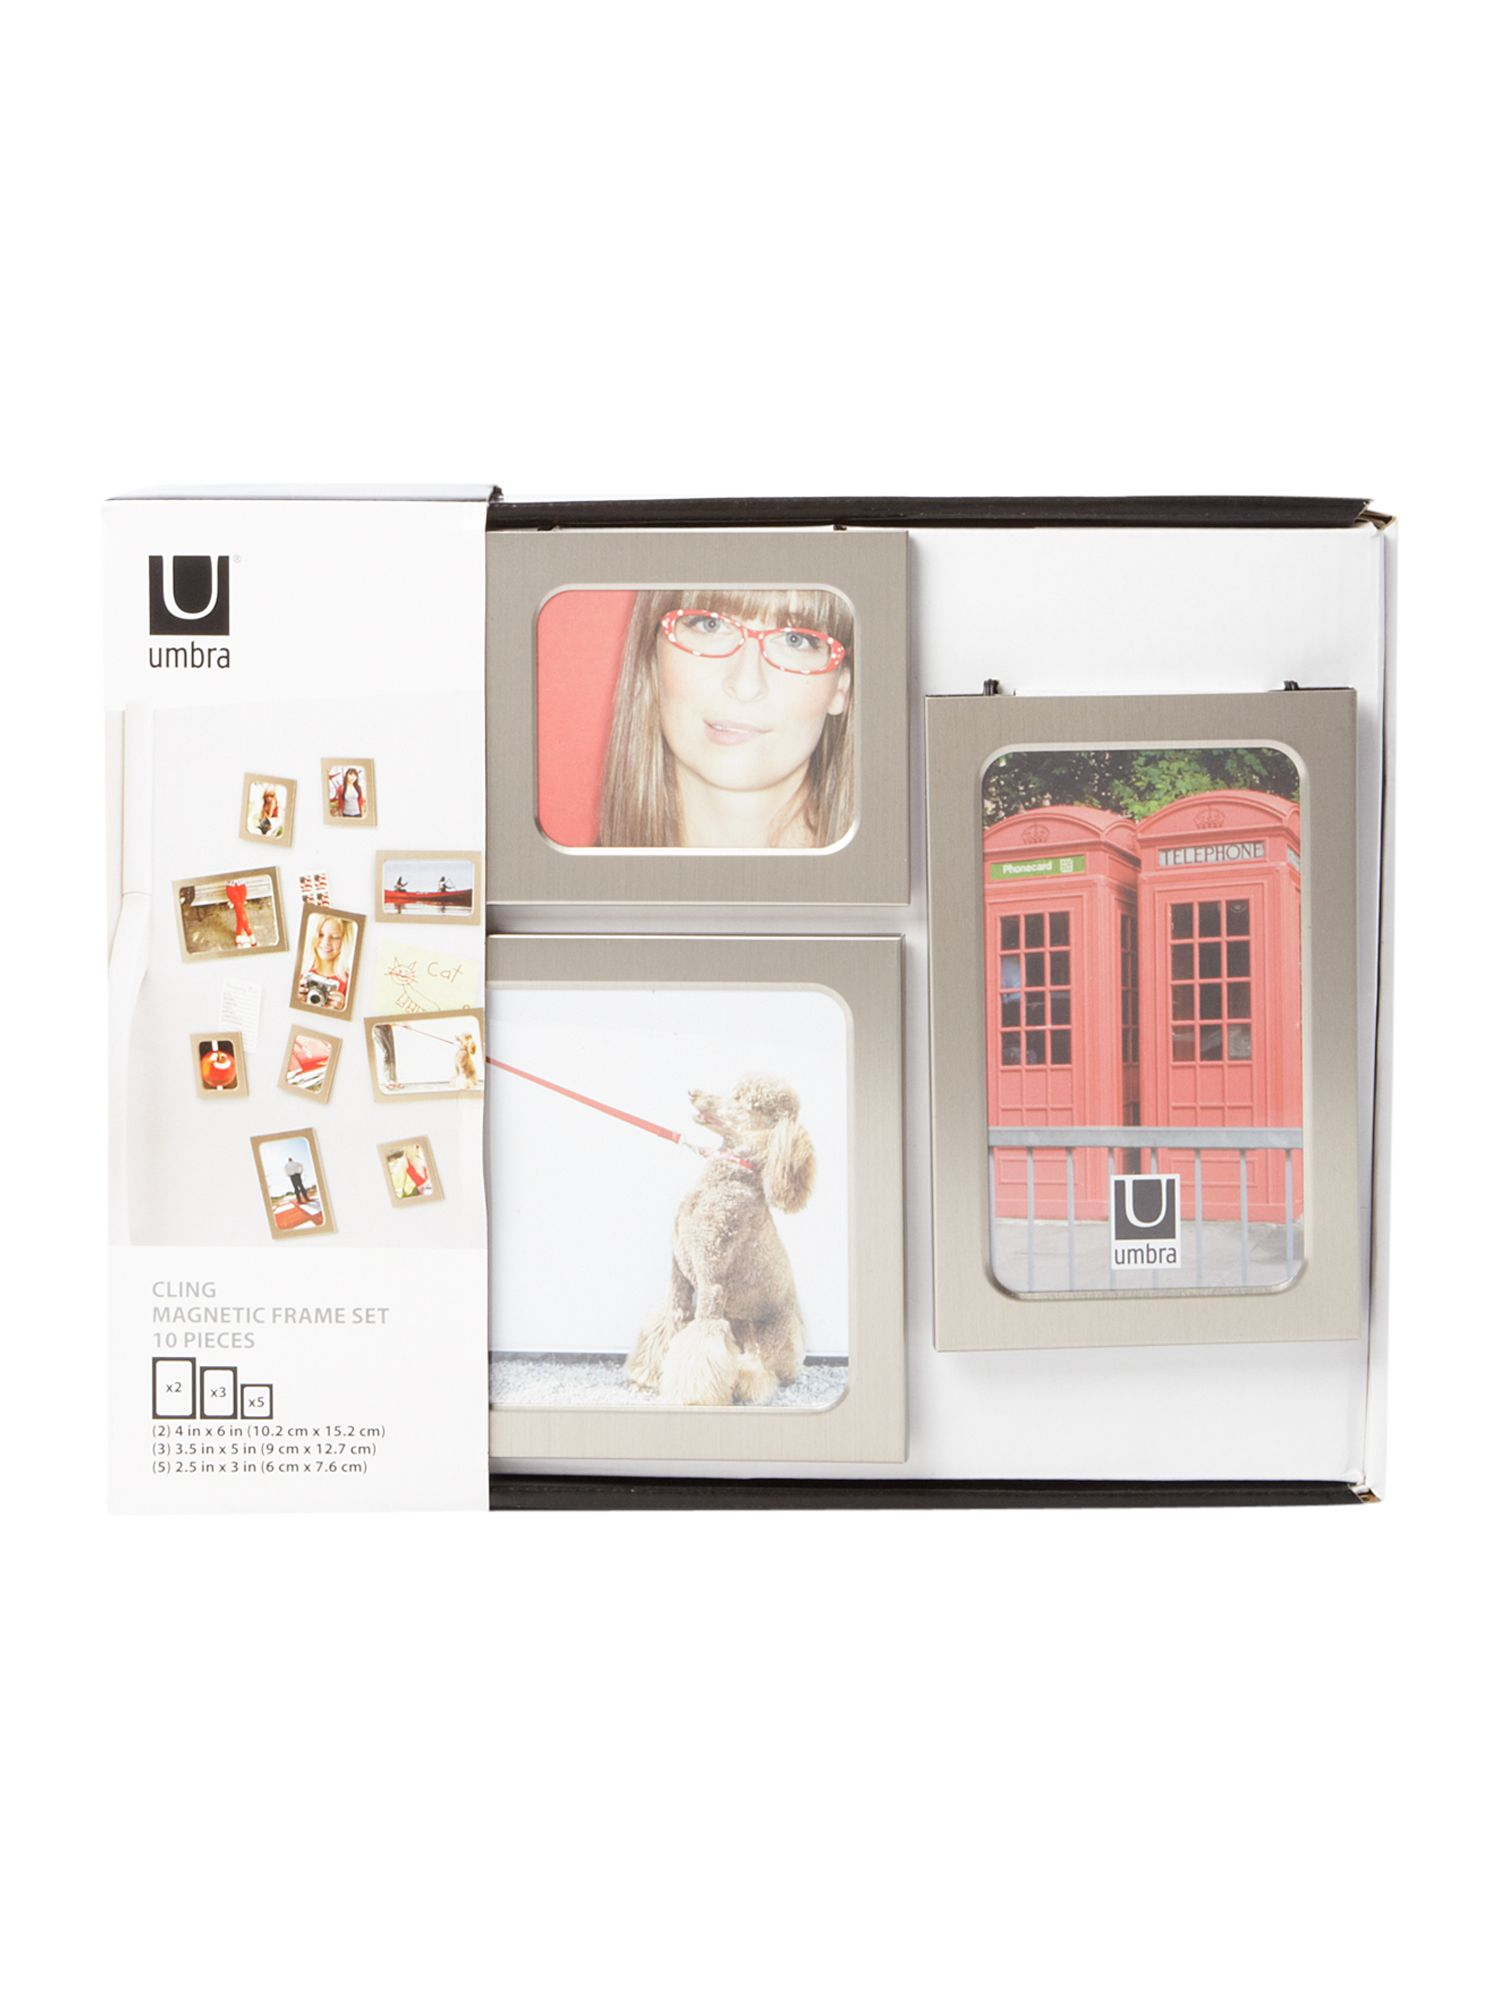 Cling 10 piece magnetic photo frame set